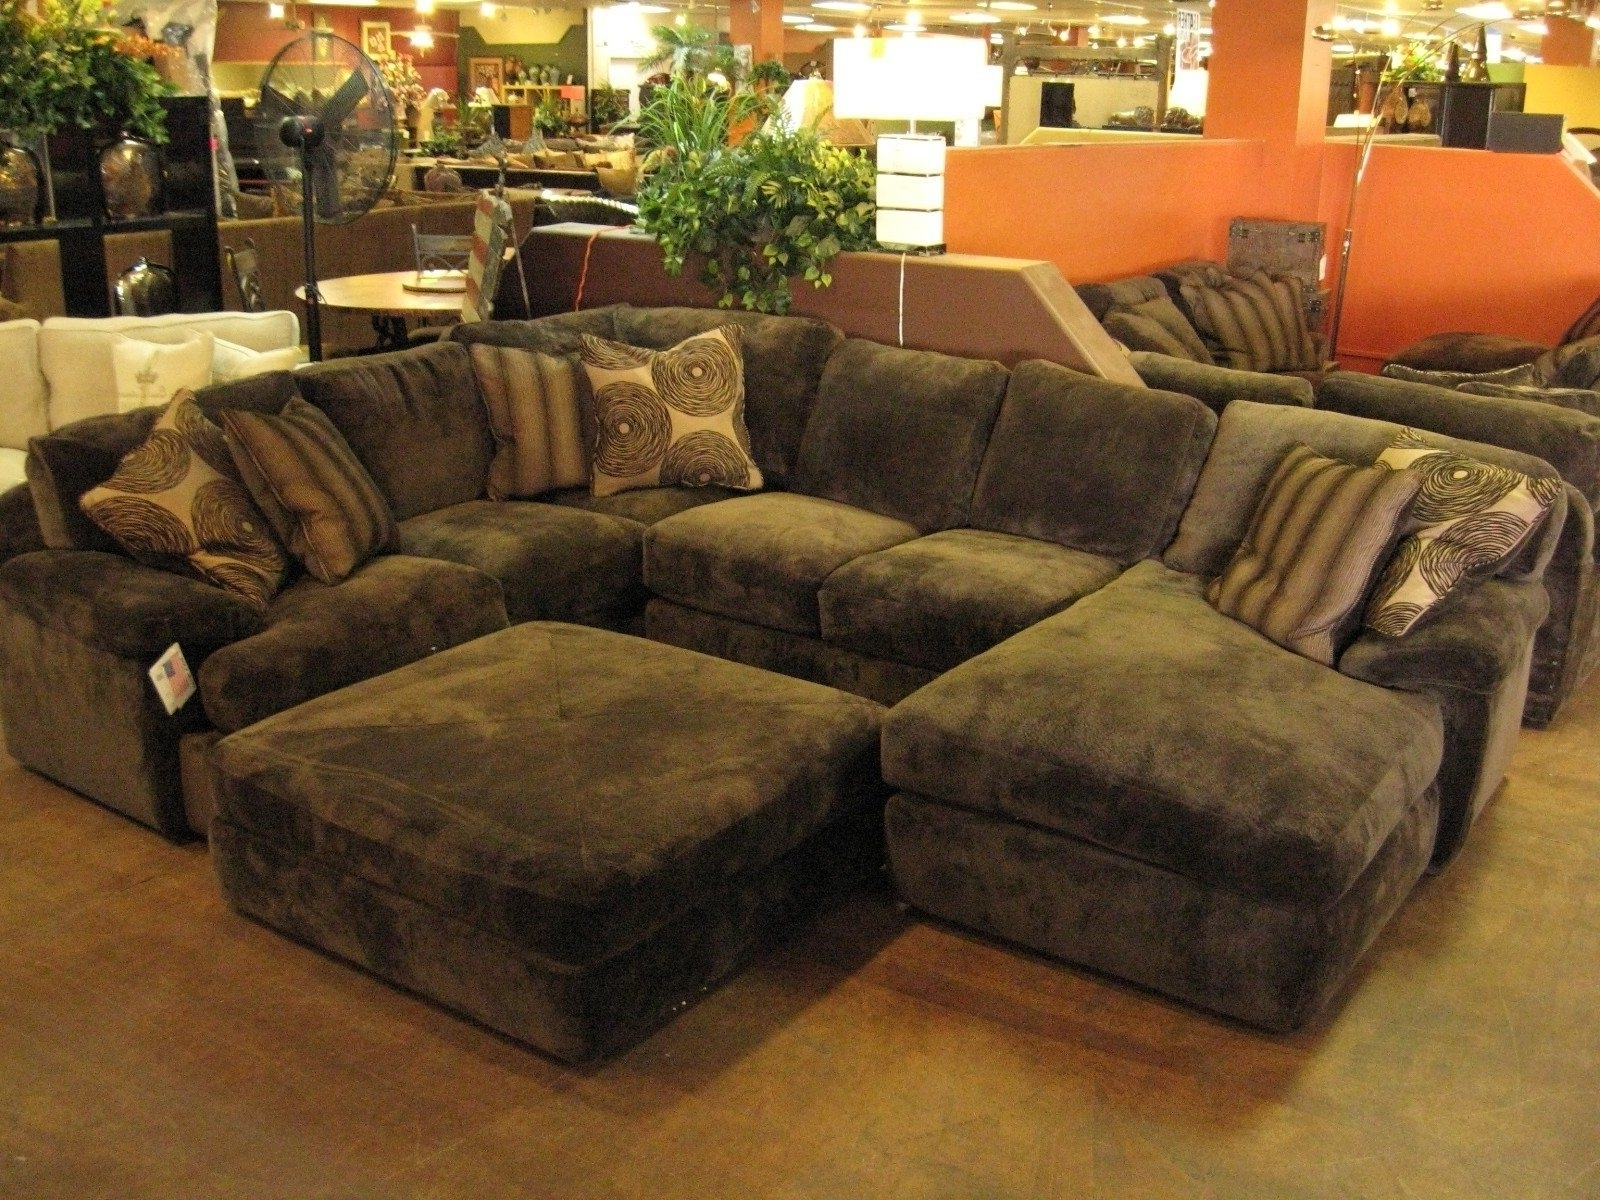 2019 Stylish Sectional Sofa With Oversized Ottoman – Mediasupload Inside Leather Sectionals With Ottoman (View 2 of 20)